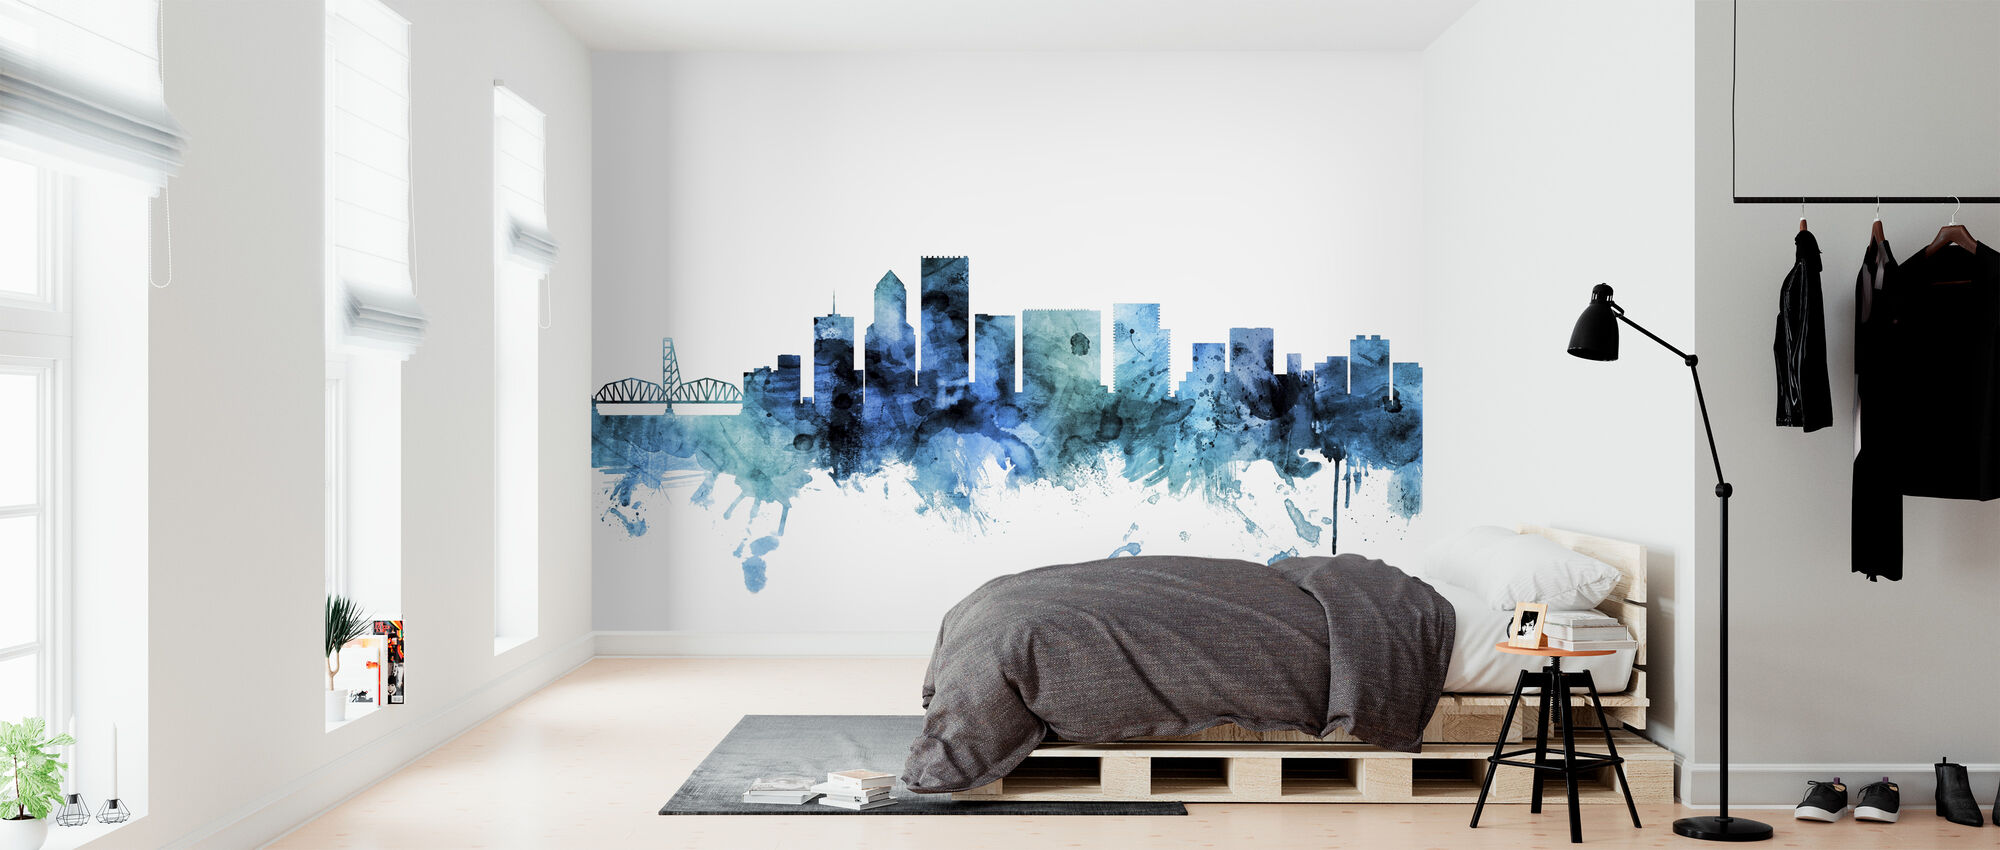 Portland Oregon Skyline - Wallpaper - Bedroom